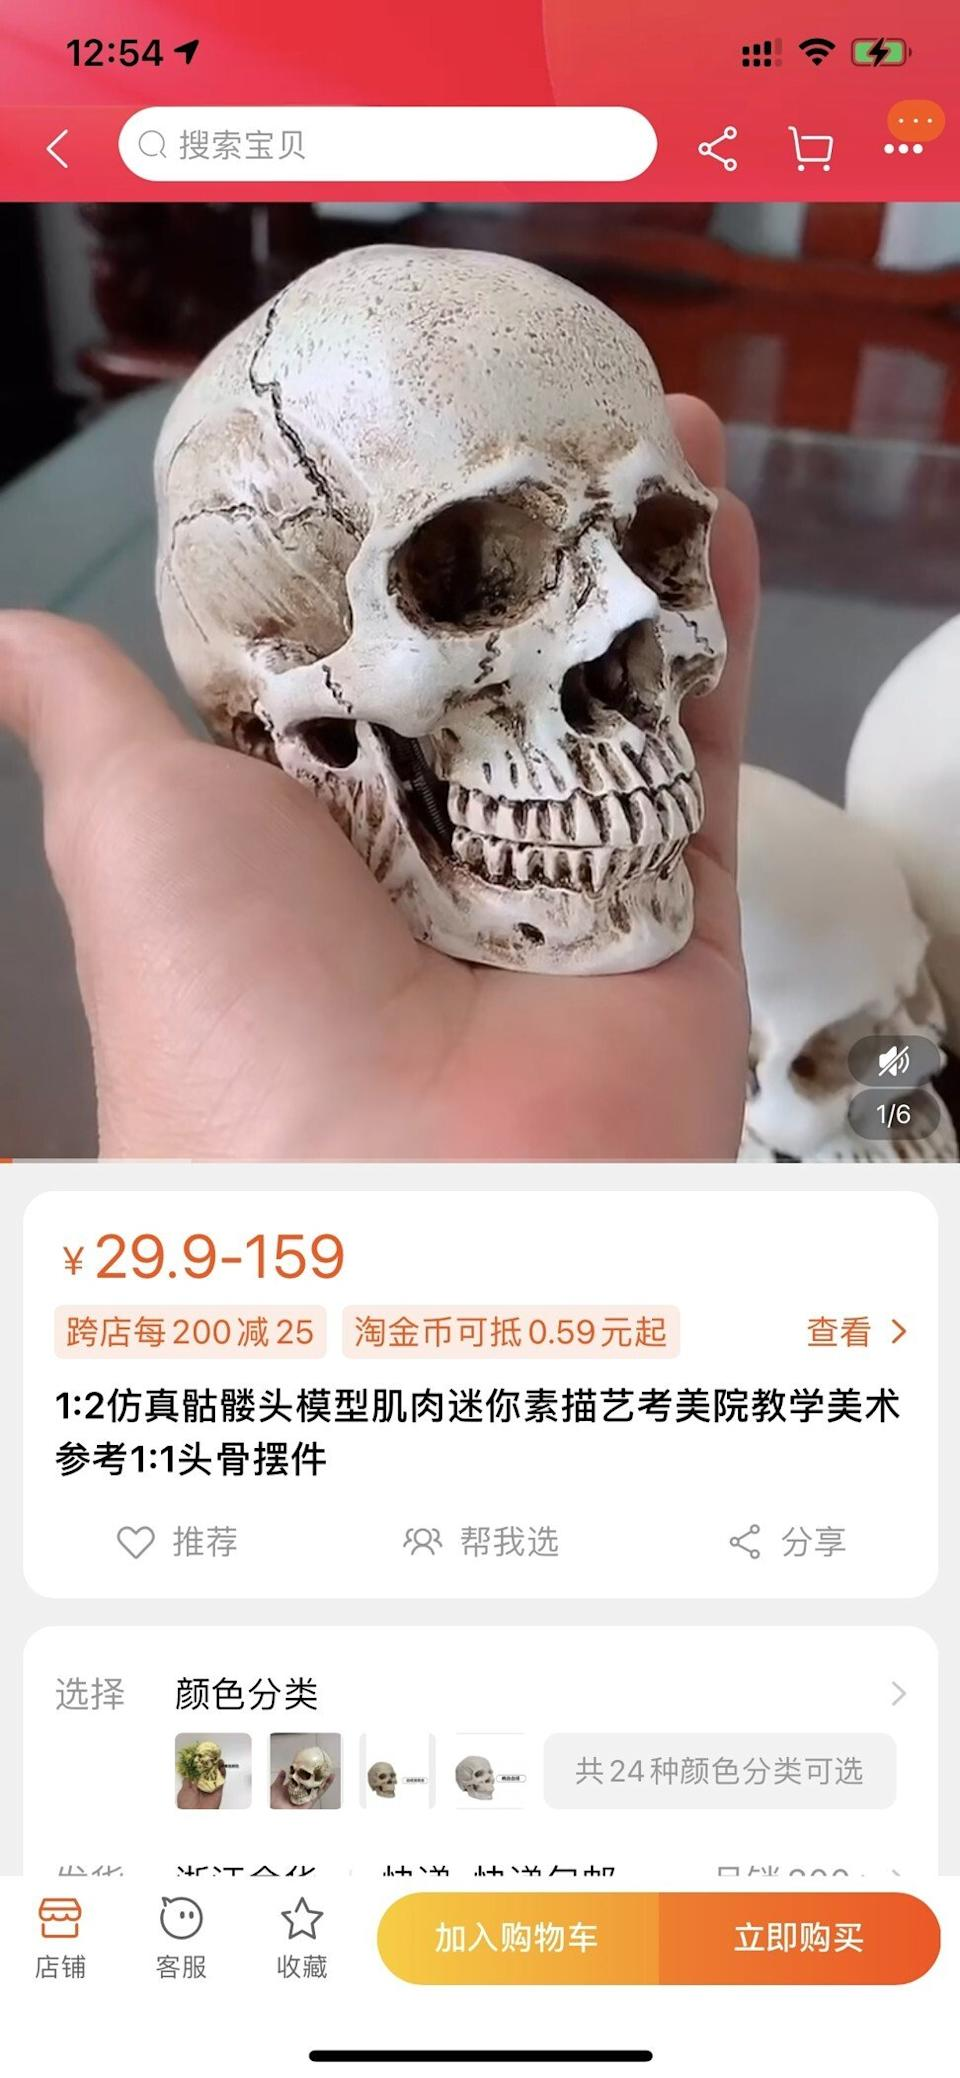 A miniature skull, one of the weirder items sold online on Singles' Day. Photo: courtesy of Tmall